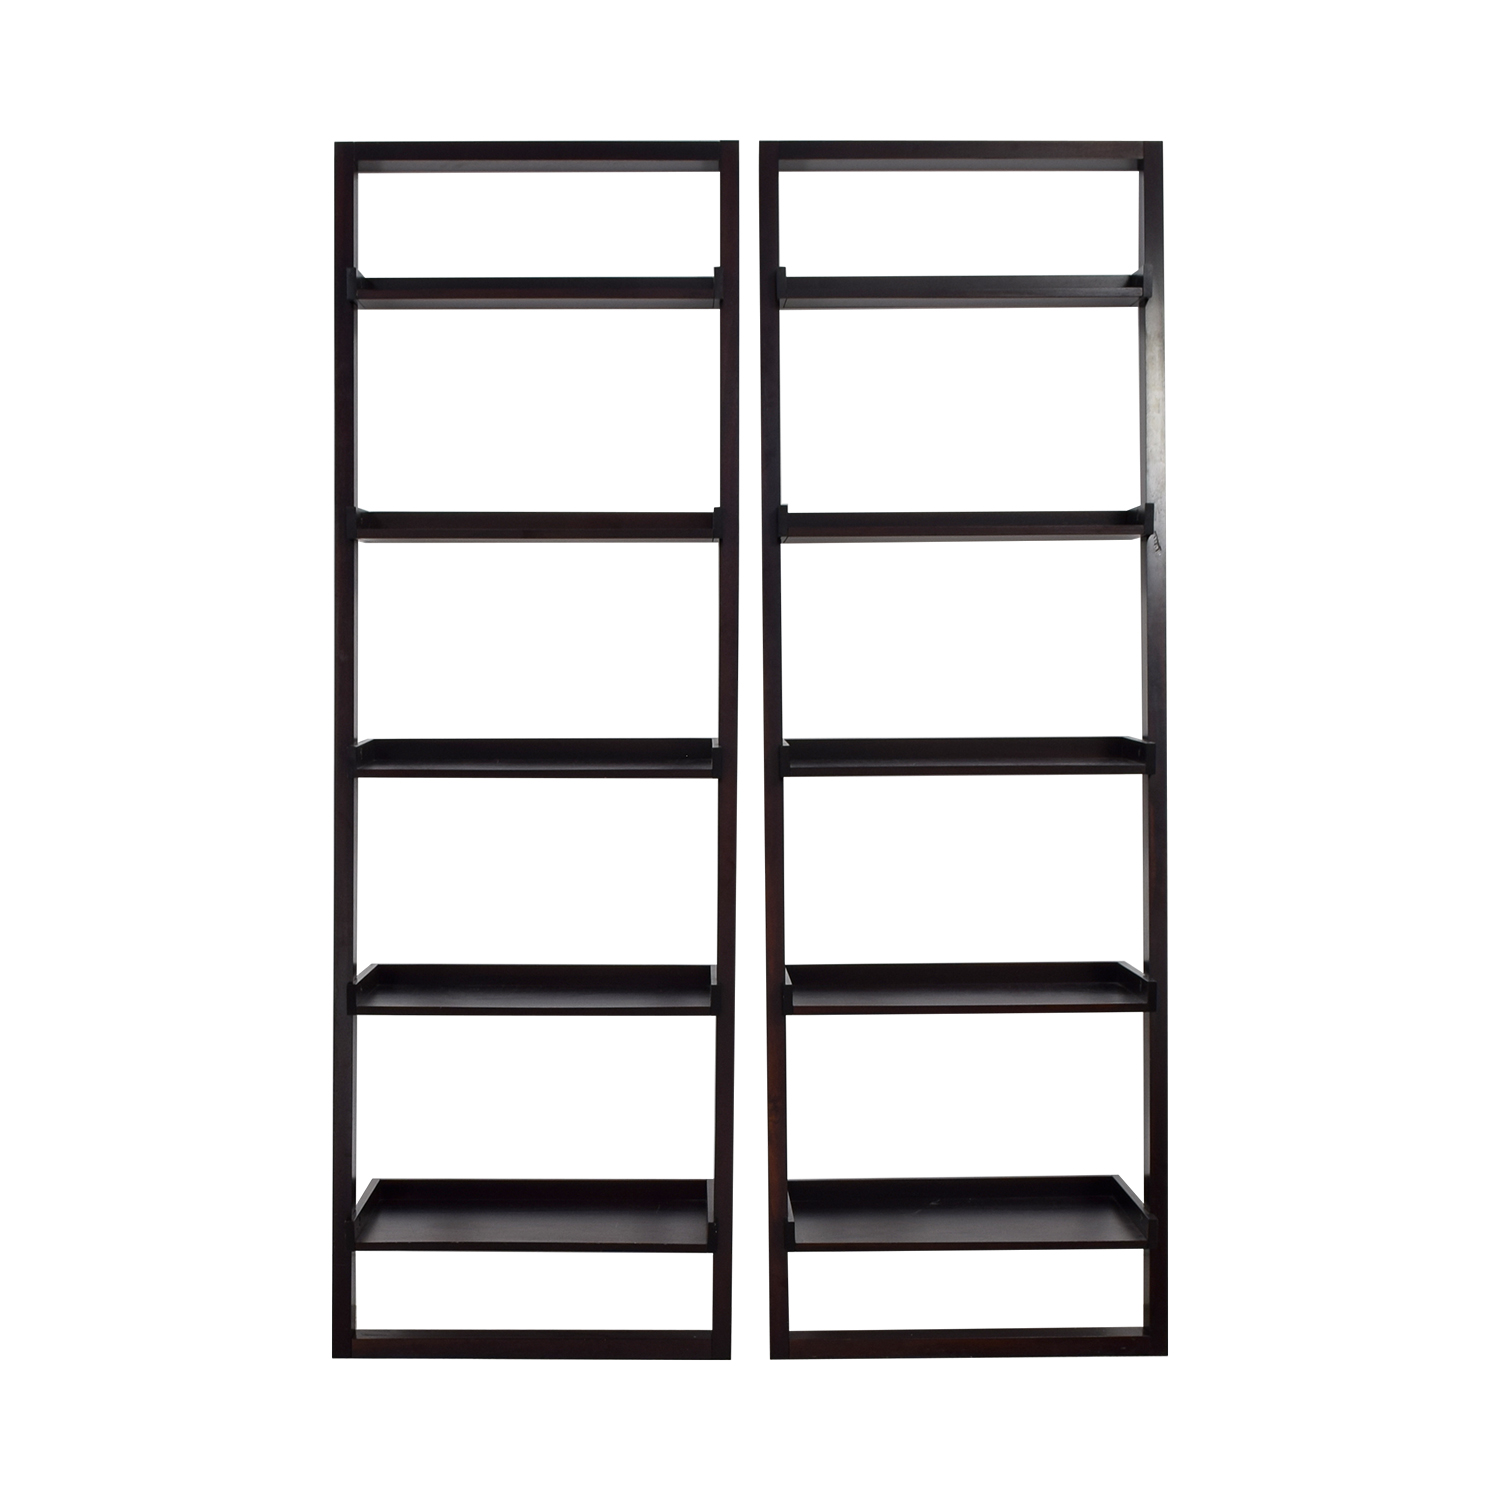 Crate & Barrel Crate & Barrel Sloane Black Leaning Bookshelf used